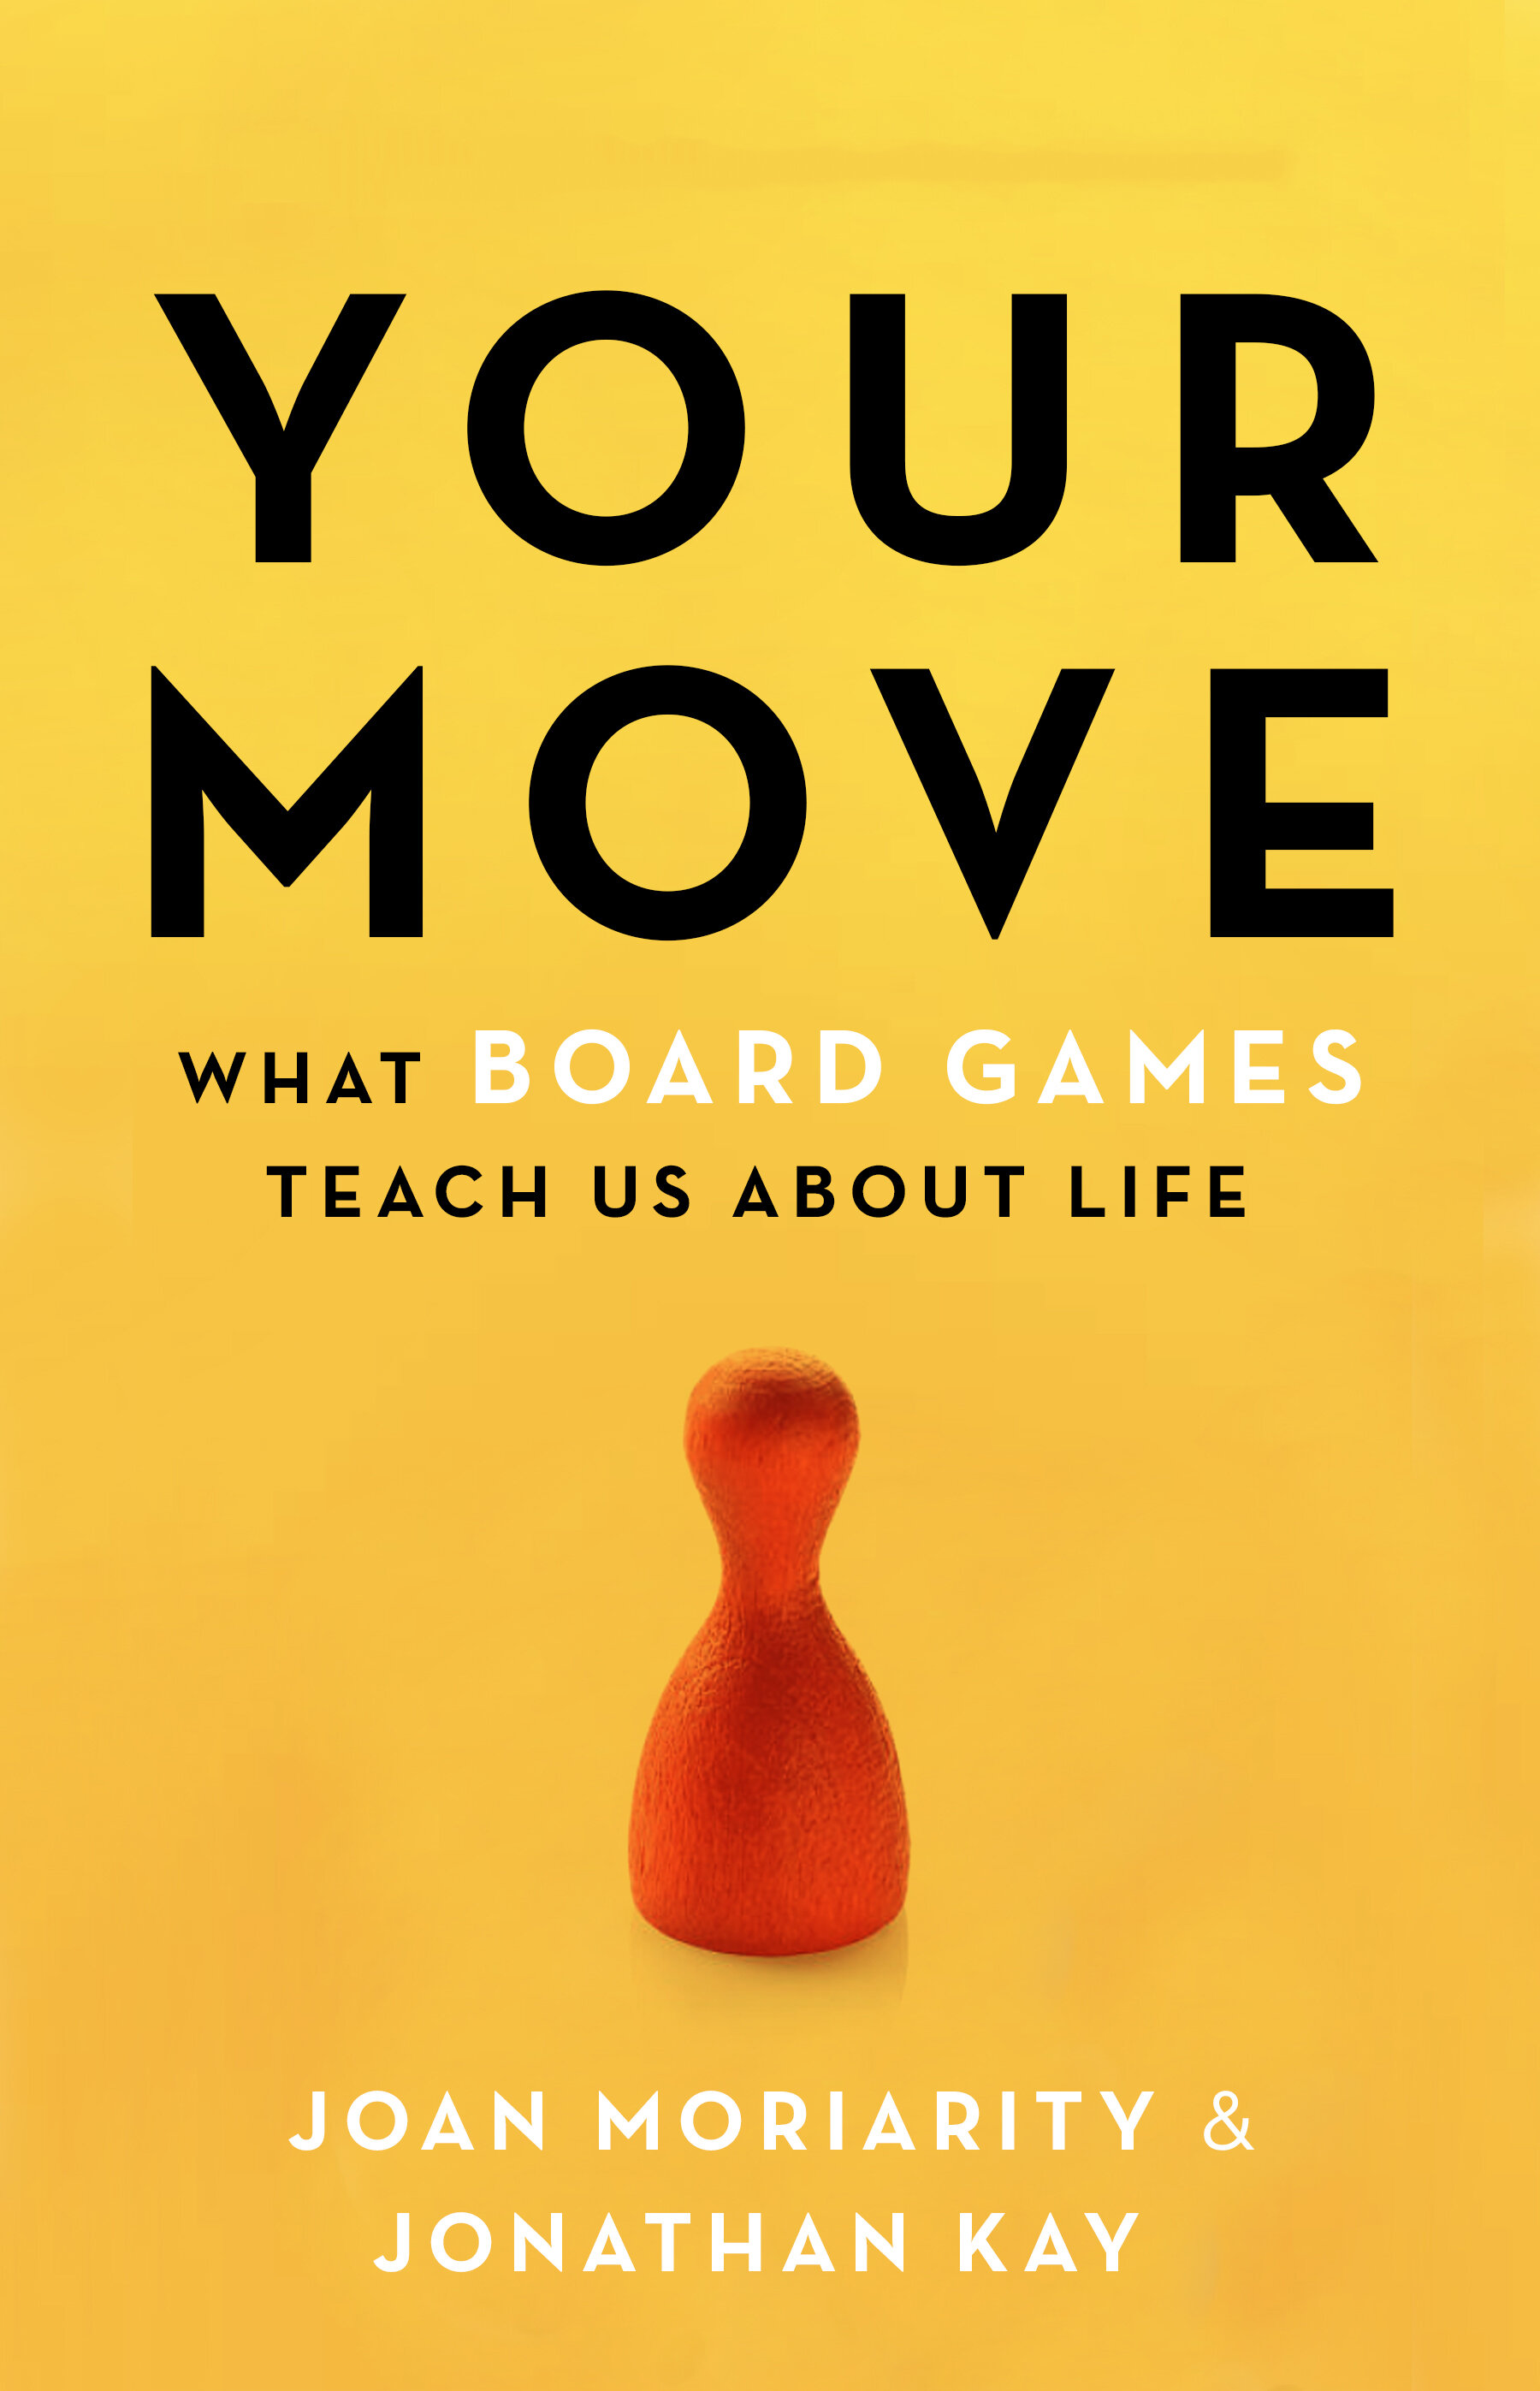 """Check out Joan's amazing book """"Your move""""!"""